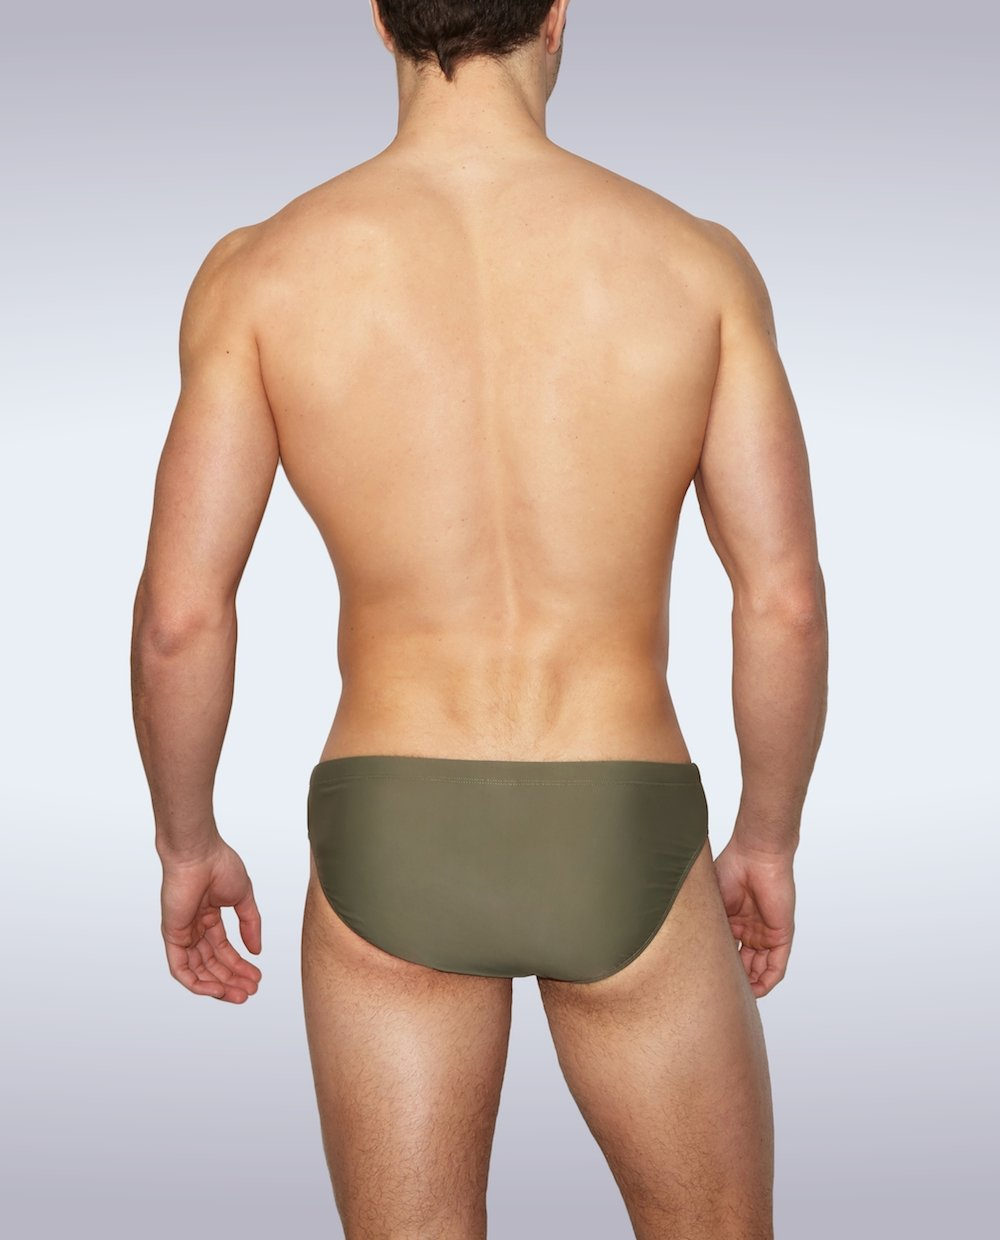 Vecchio Swim Brief - Garçon Underwear sexy men's underwear Swim Brief Garçon Underwear